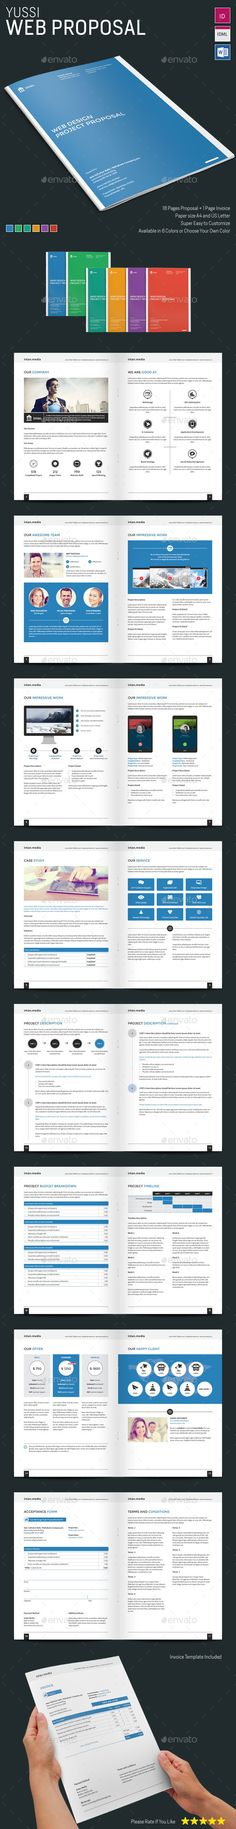 Web Proposal Template | #proposaltemplate #proposal | Download: http://graphicriver.net/item/yussi-web-proposal/9093435?ref=ksioks